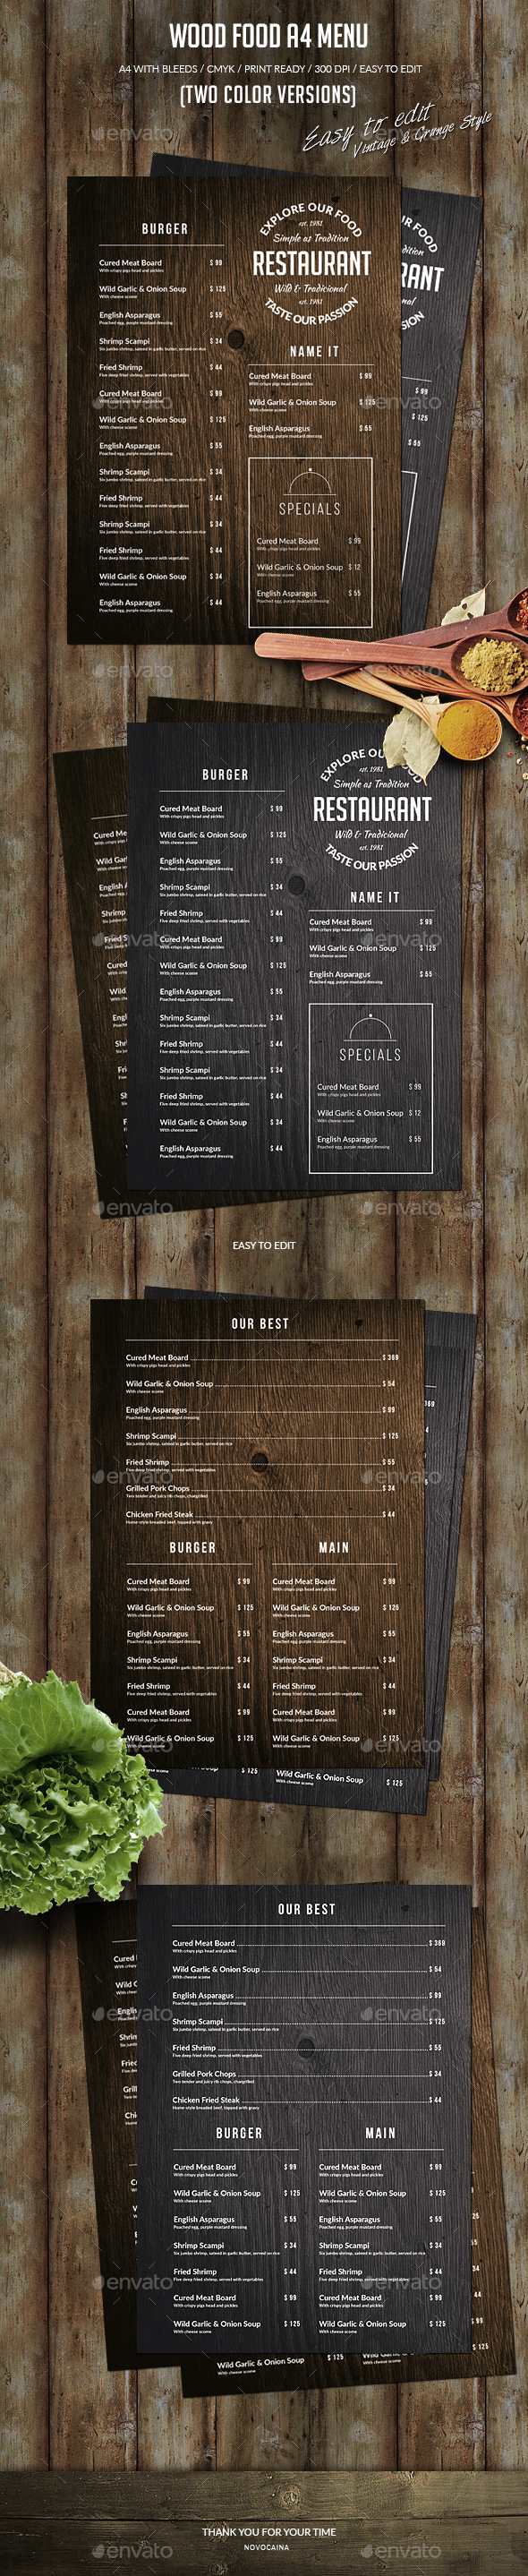 Wood Food A4 Menu - Food Menus Print Templates